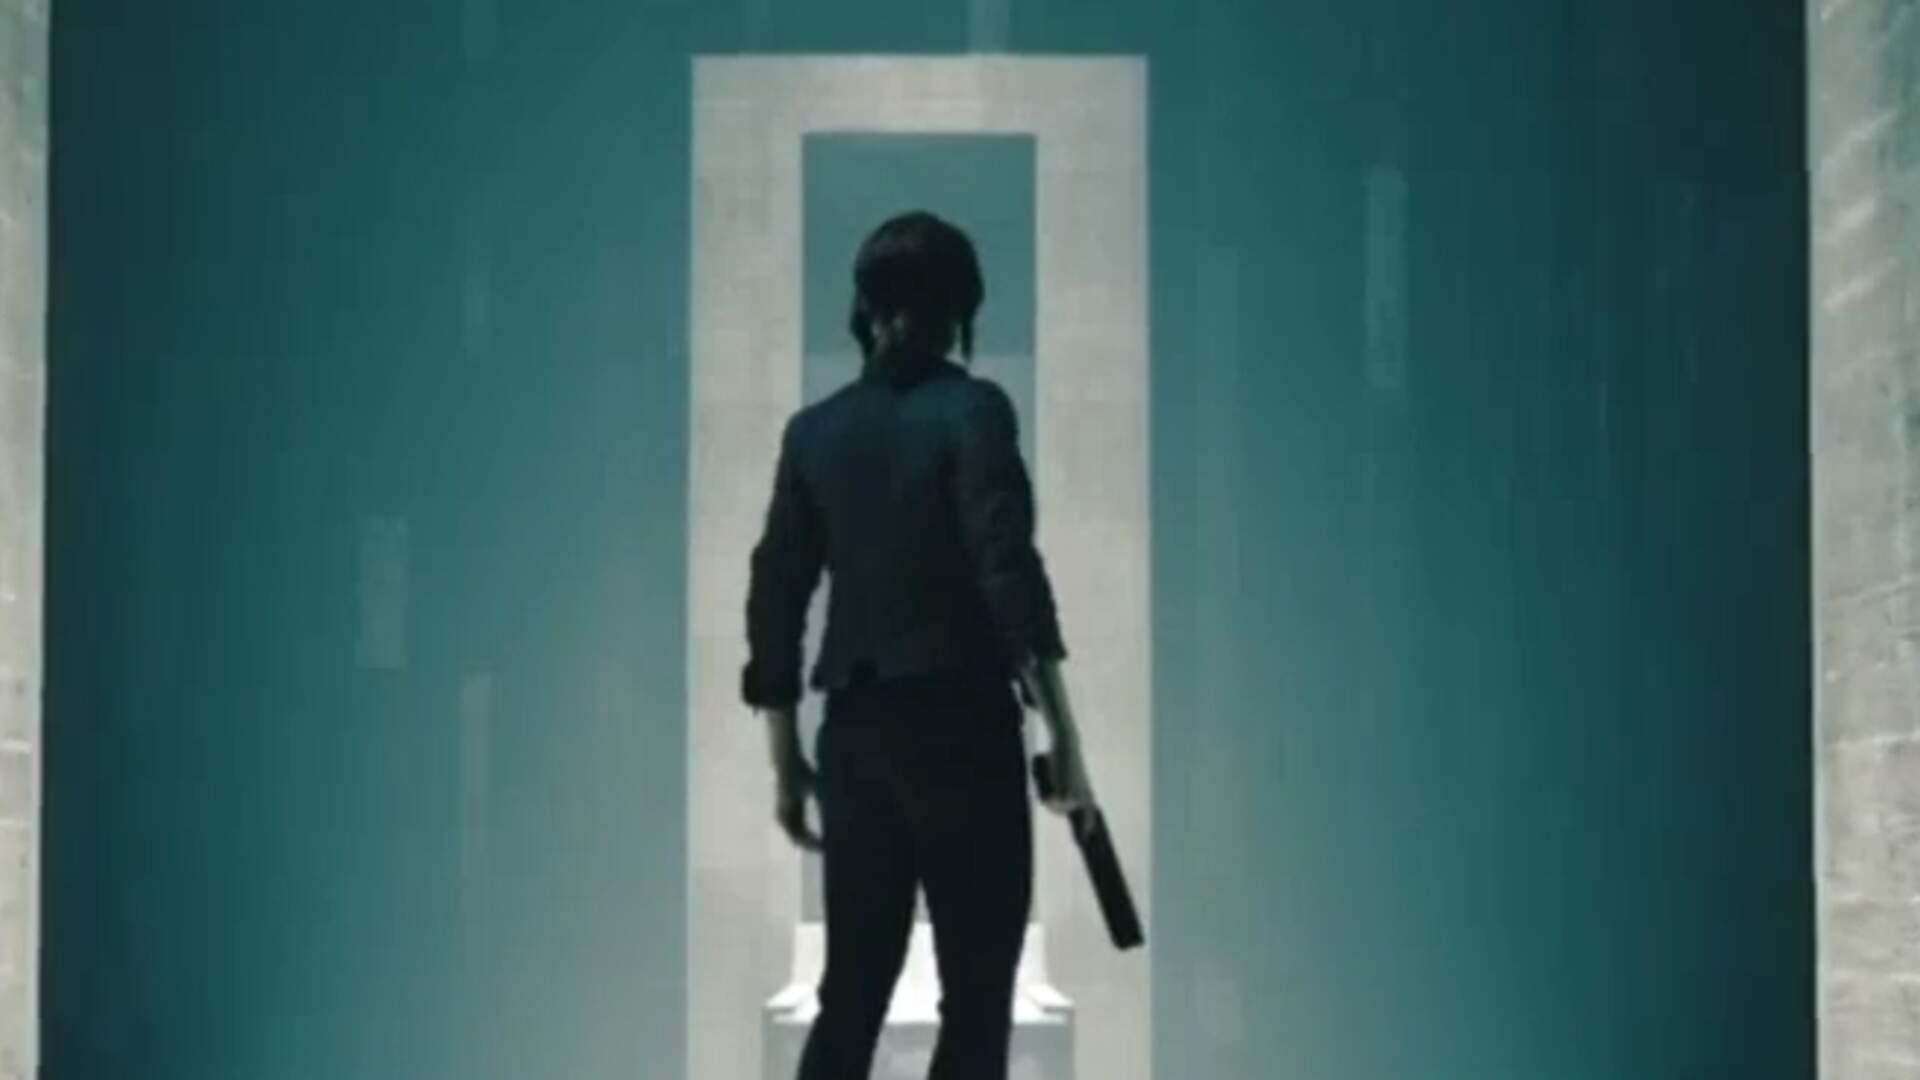 The Alan Wake Developers are Branching Off Into Live Multiplayer Games